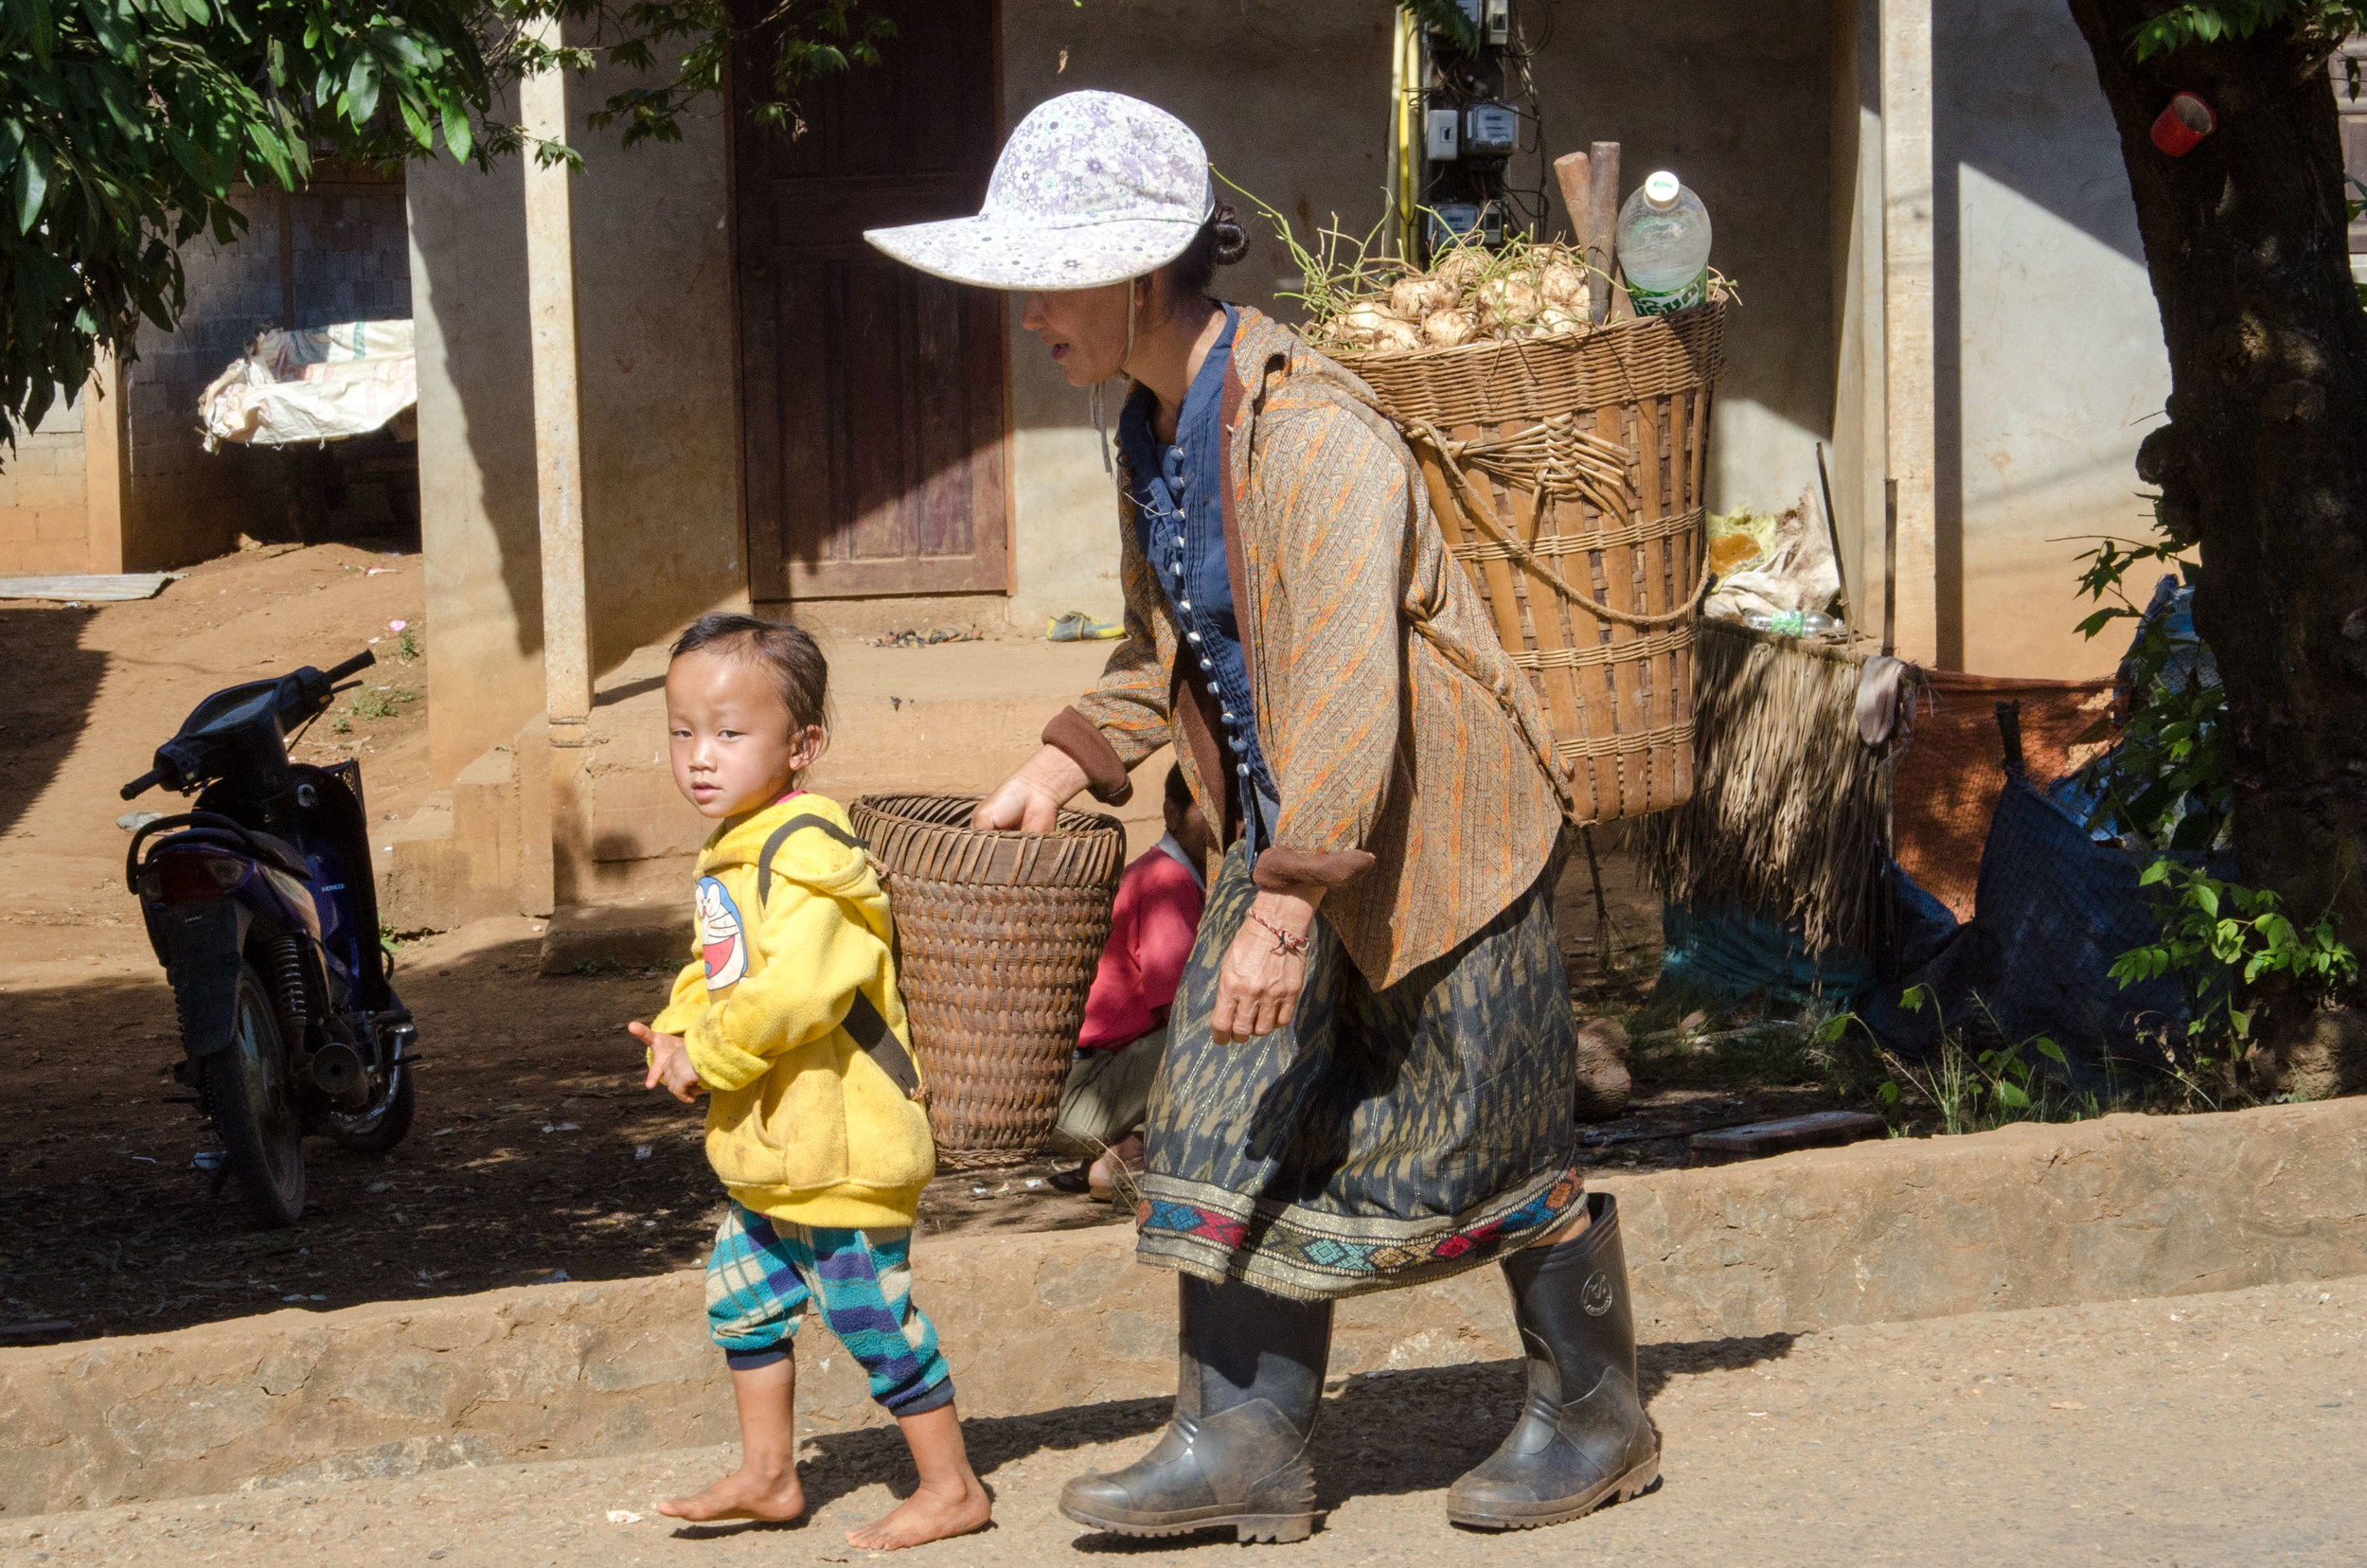 Mother & child caryying produce, Ban Phajao, Laos, 30 Nov 2017.jpg